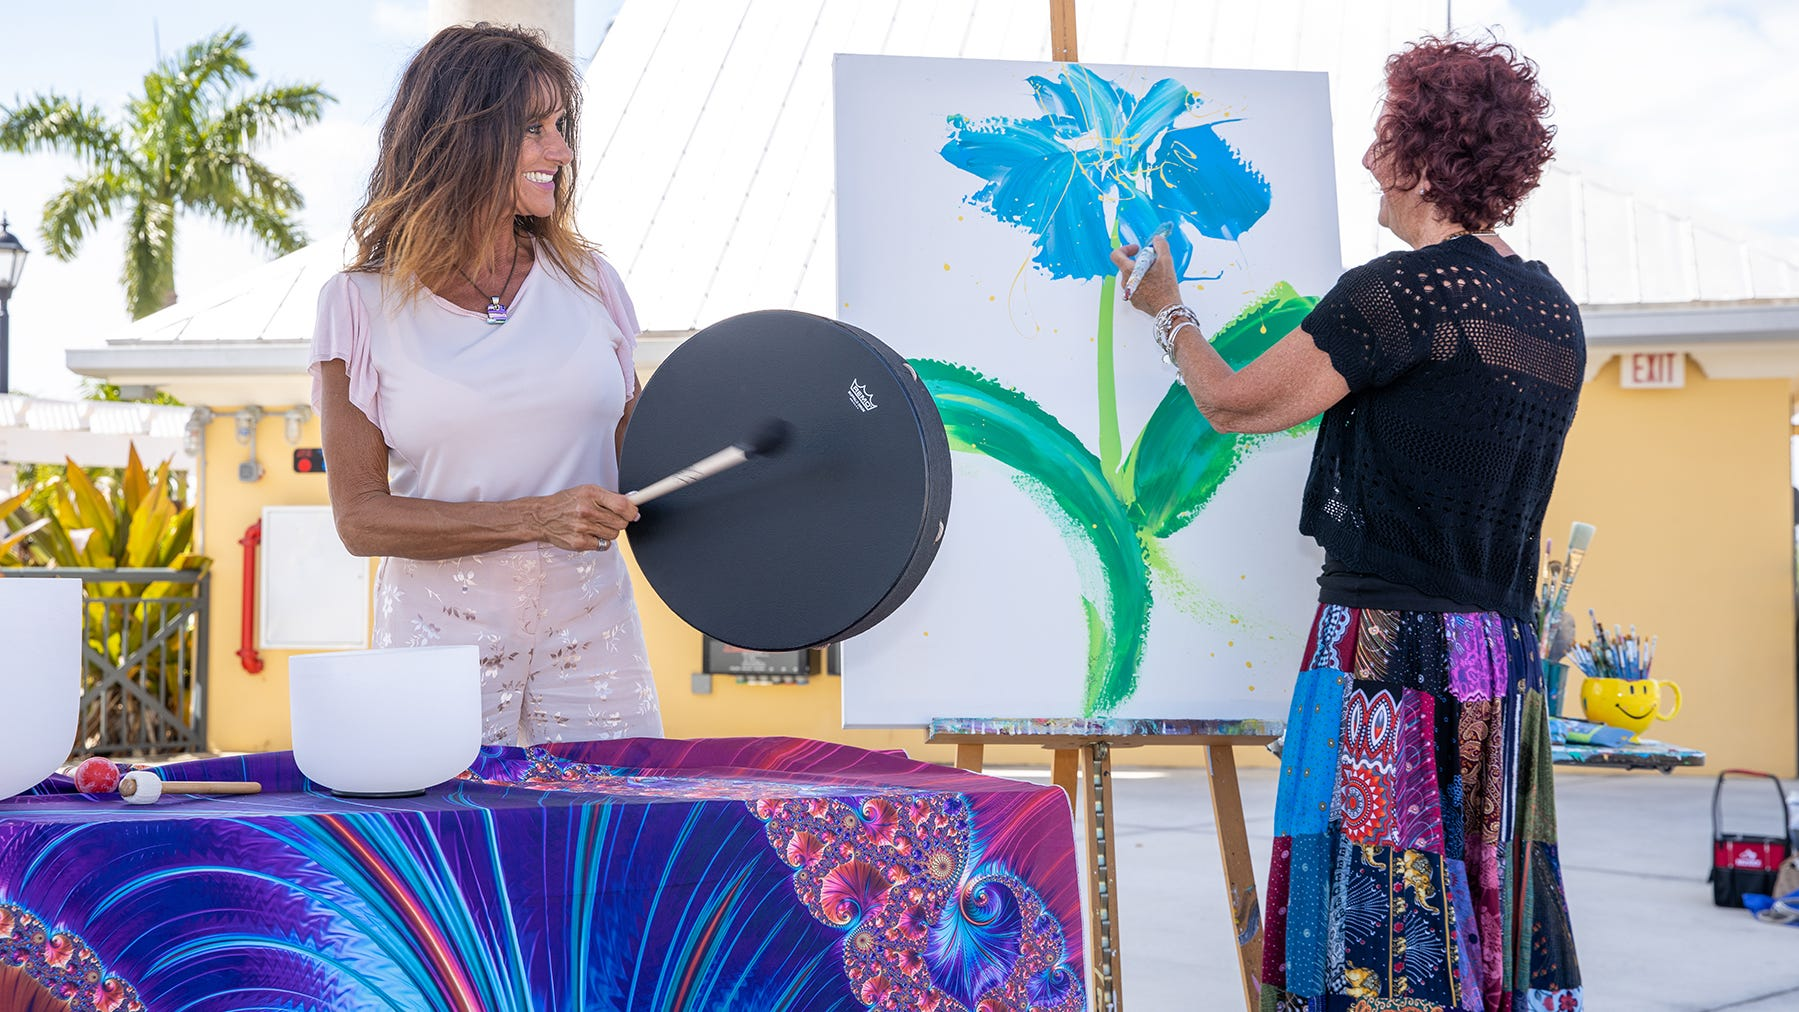 New festival in Port St. Lucie combines benefits of art and mindfulness to improve life